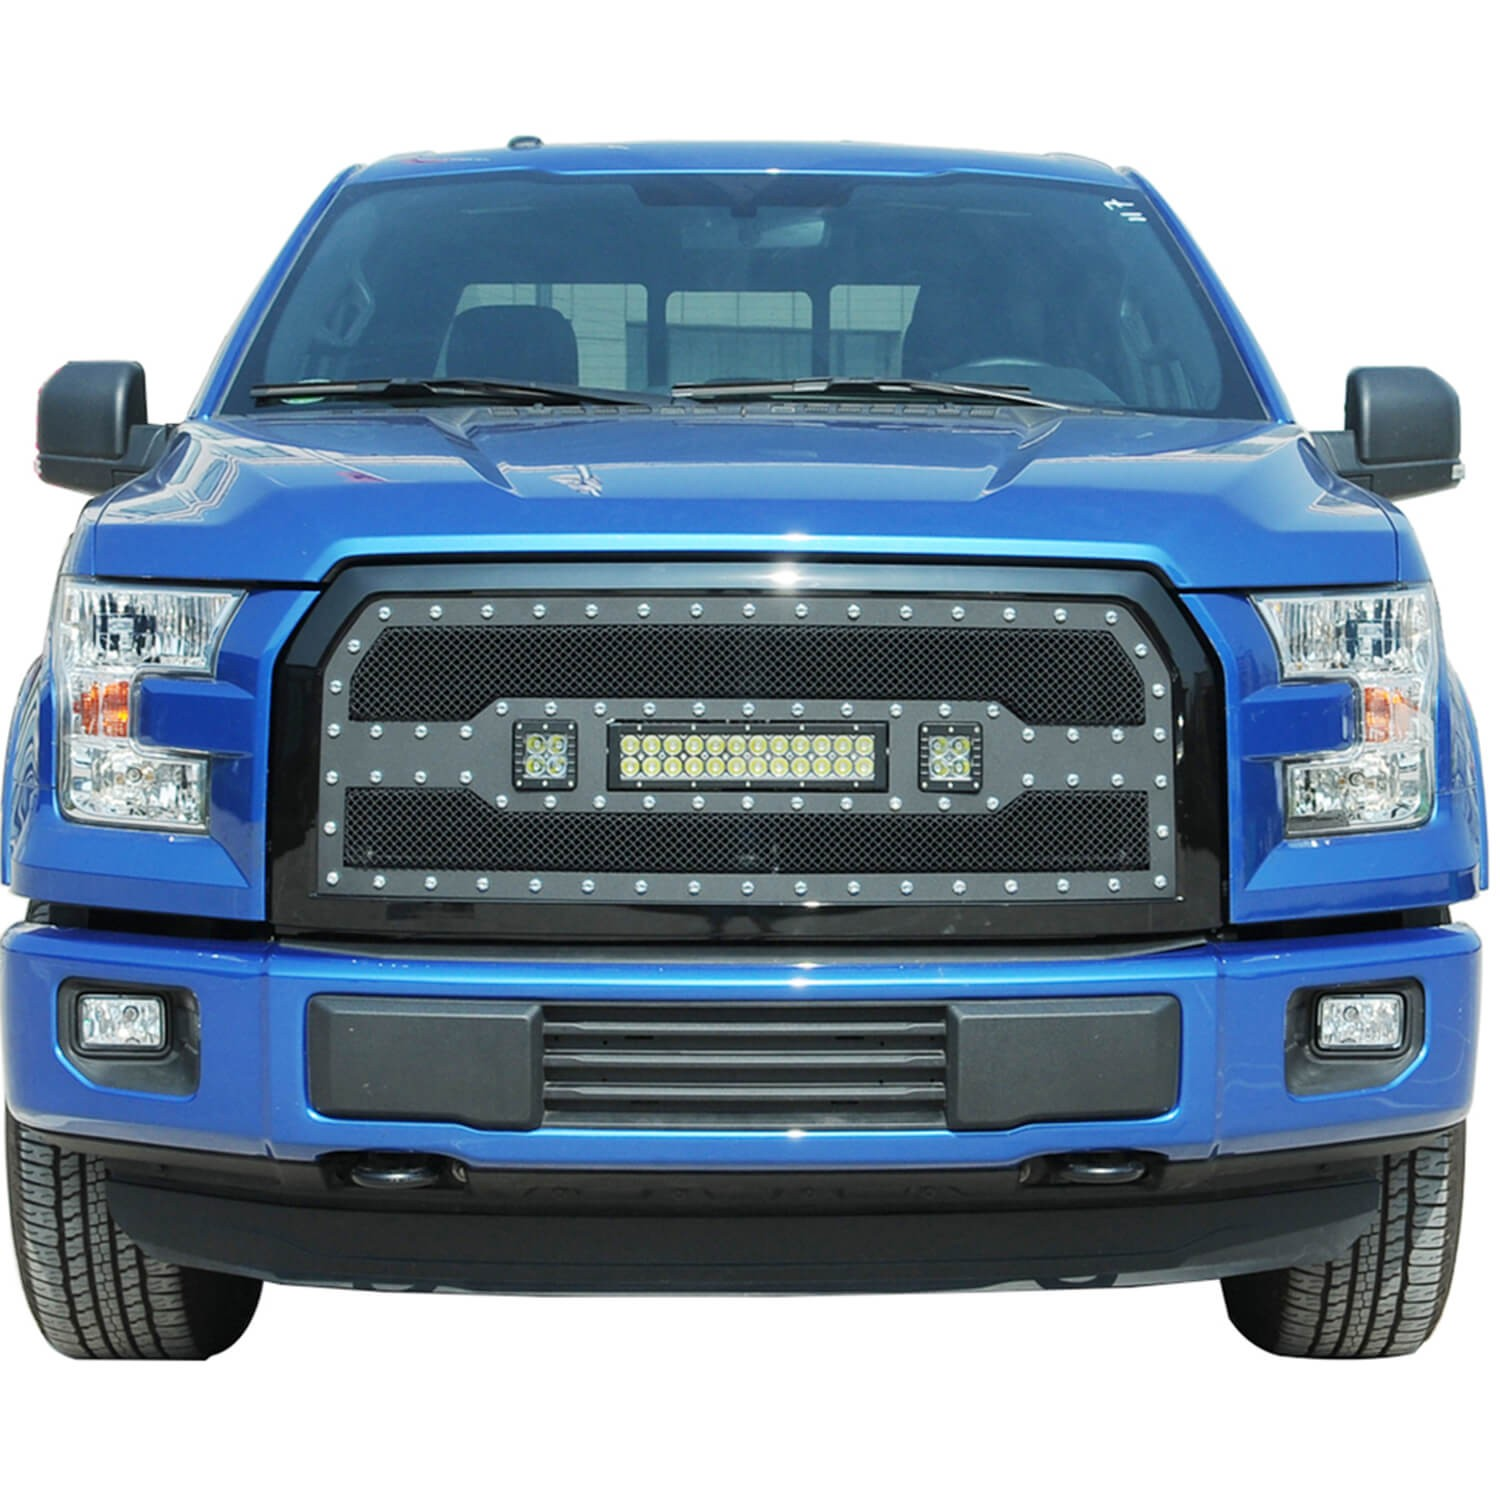 F-150 Evolution Package Grille at Pro Truck in Edmonton, AB